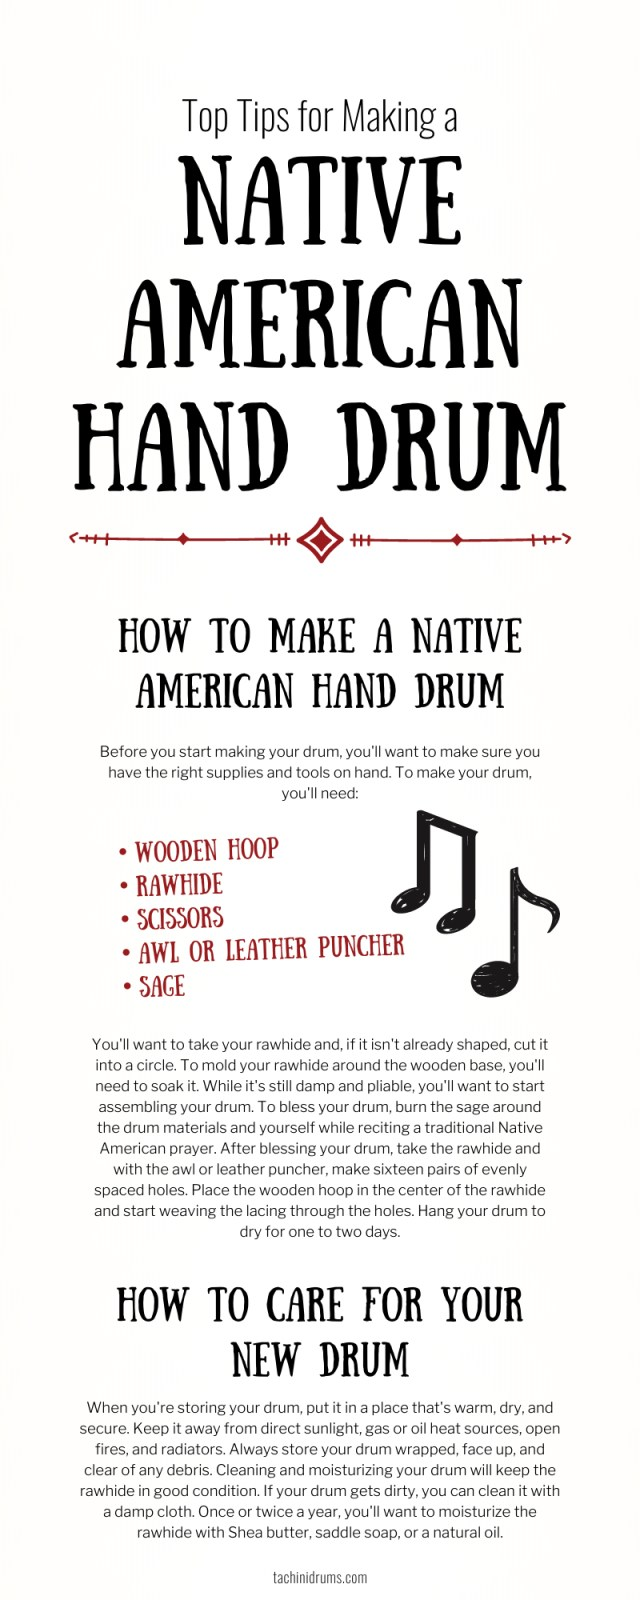 Top Tips for Making a Native American Hand Drum